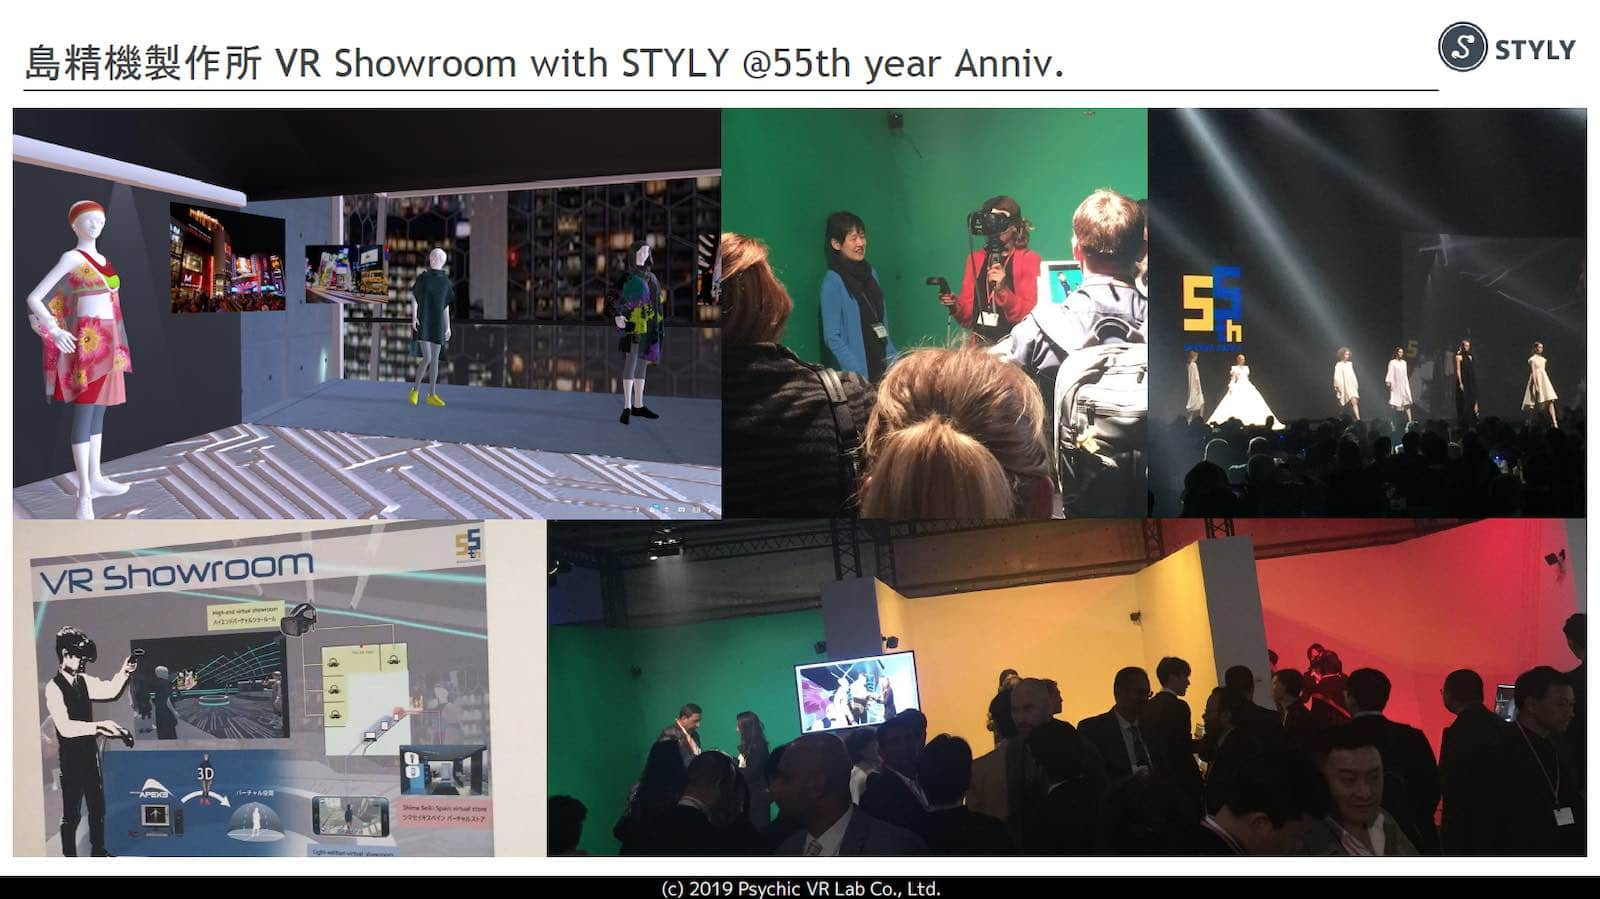 資料:島精機製作所 VR Showroom with STYLY @55th year Anniv.の様子